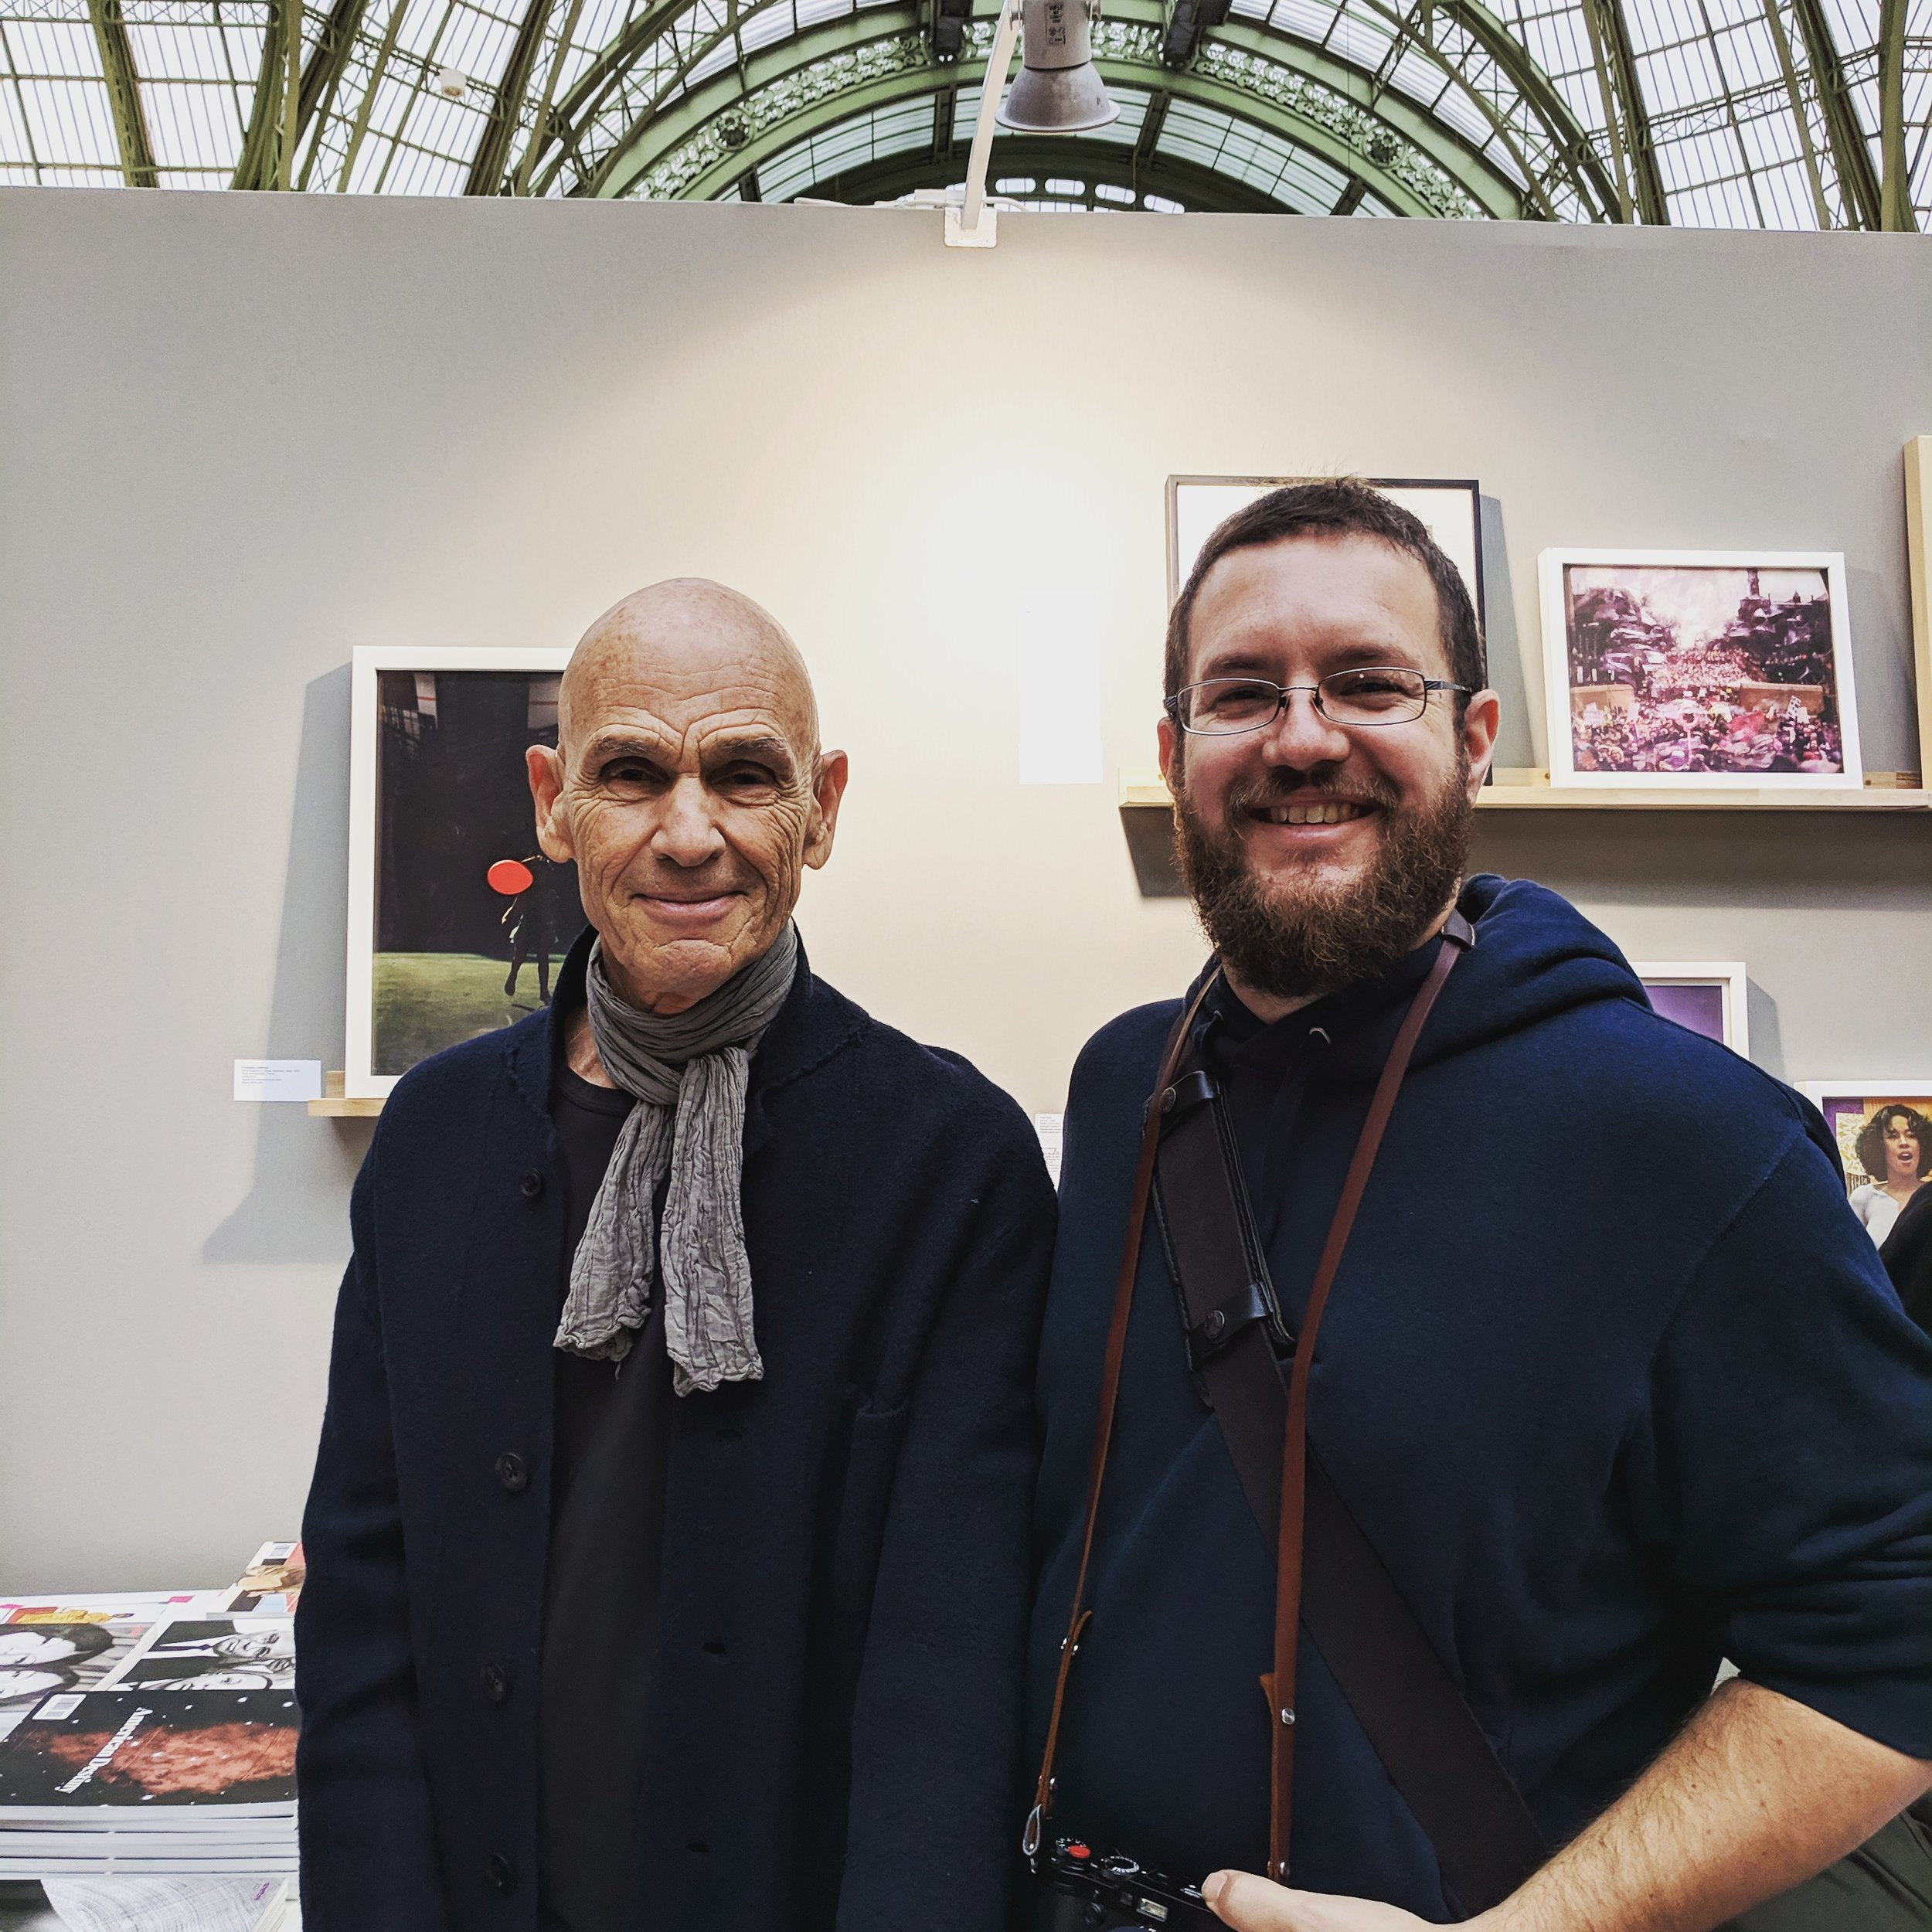 Me and Joel Meyerowitz at Paris Photo 2018.